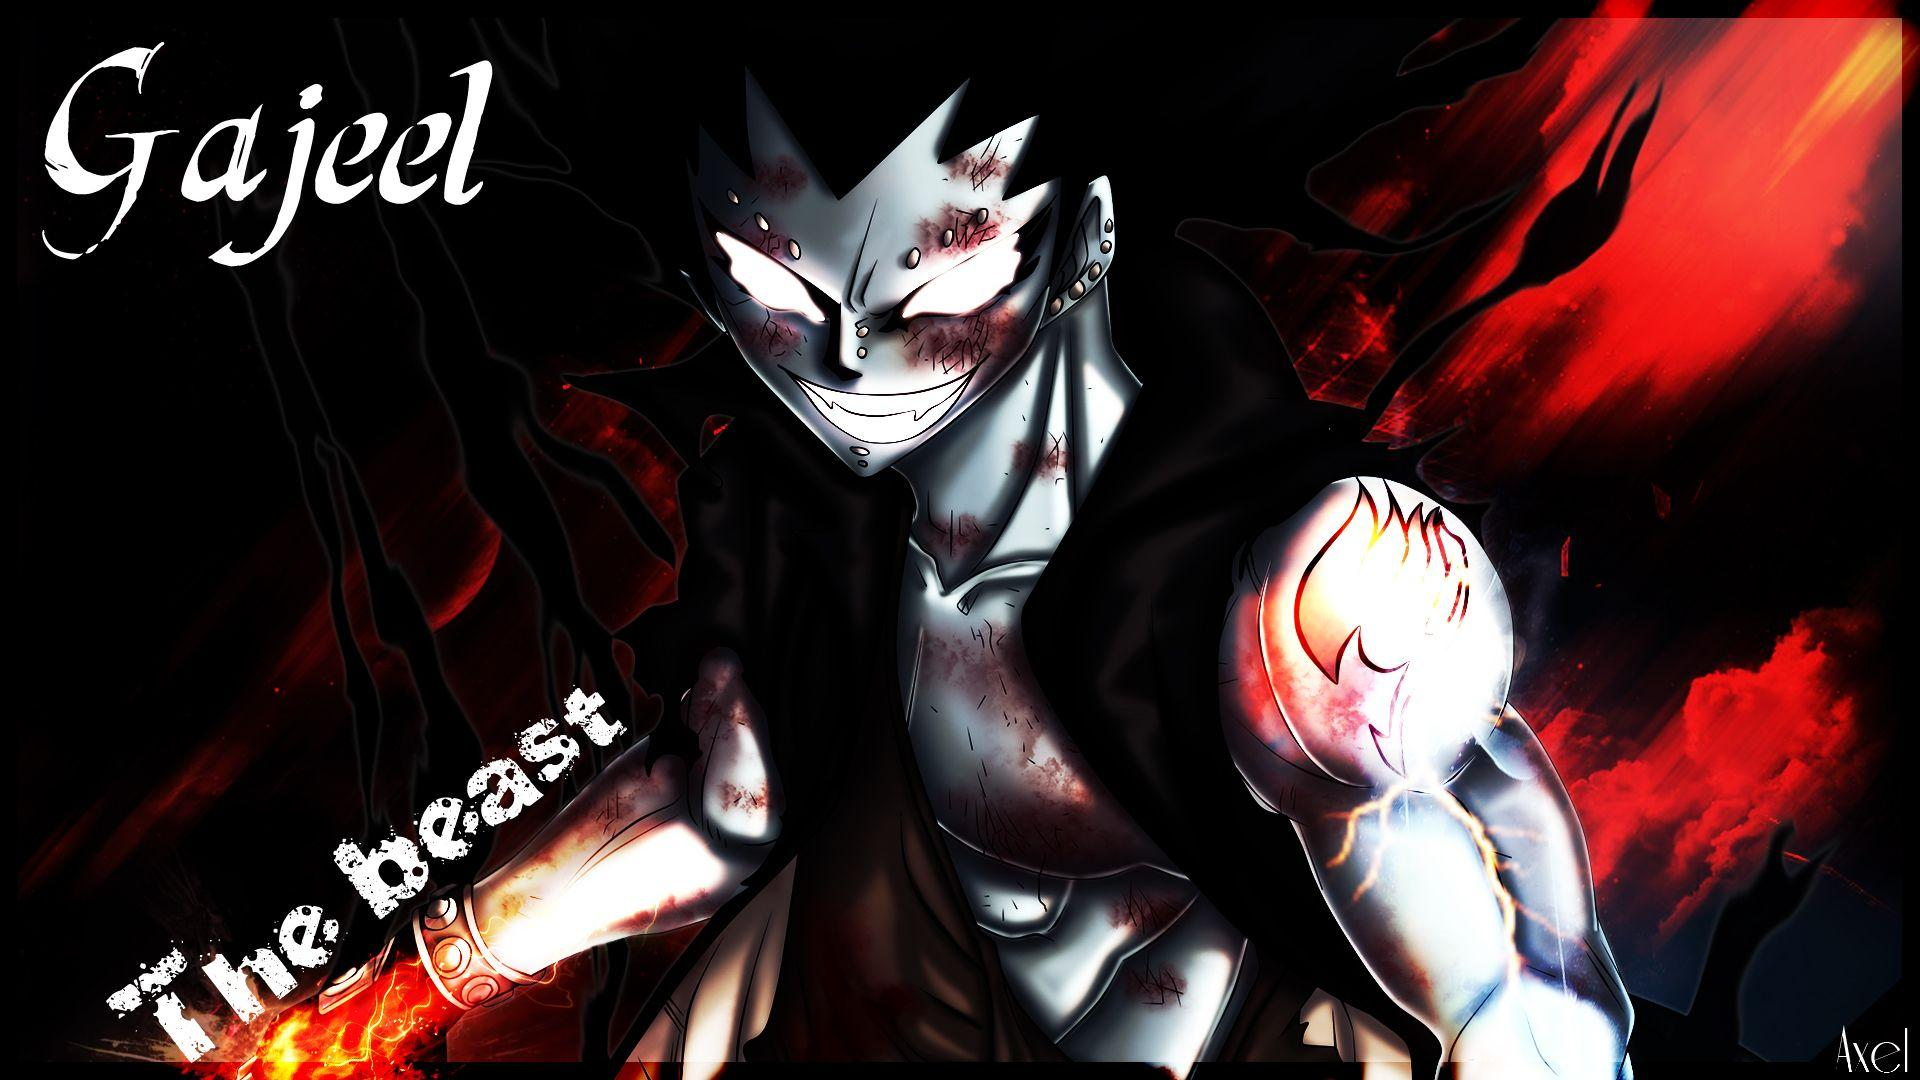 Fairy Tail Gajeel Wallpapers